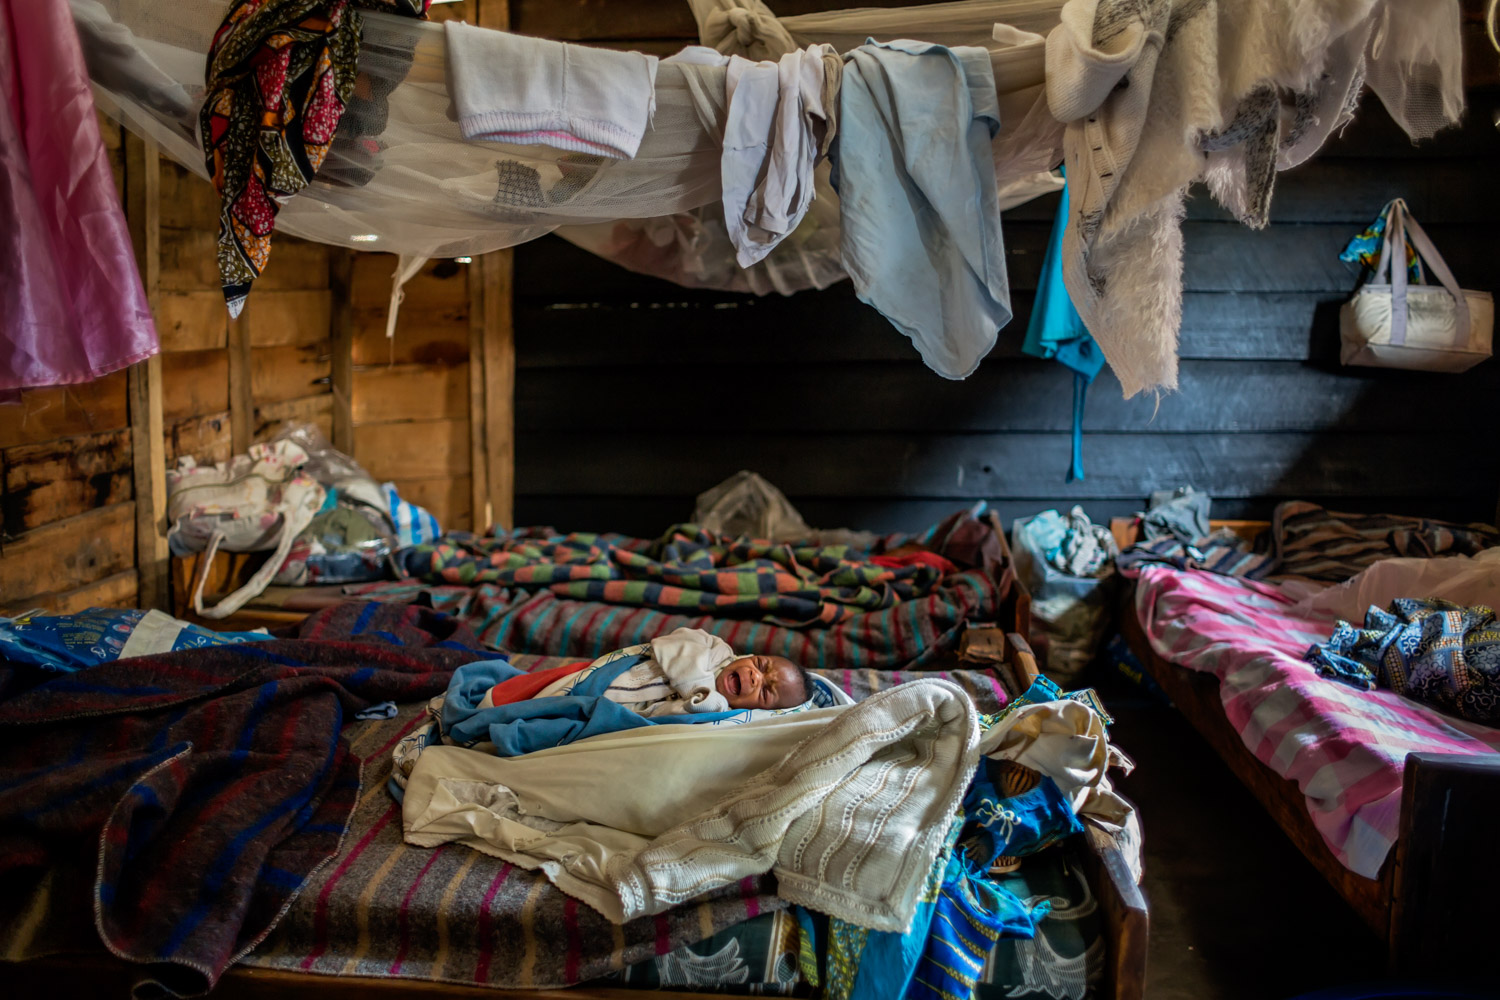 A two-week-old infant cries in a shelter for victims of sexual violence in the village of Buganga, two miles south of Minova. Founded by the activist Rebeca Masika Katsuva, a rape survivor herself, the center was home to more than 30 women and children during the attacks of November 2012.